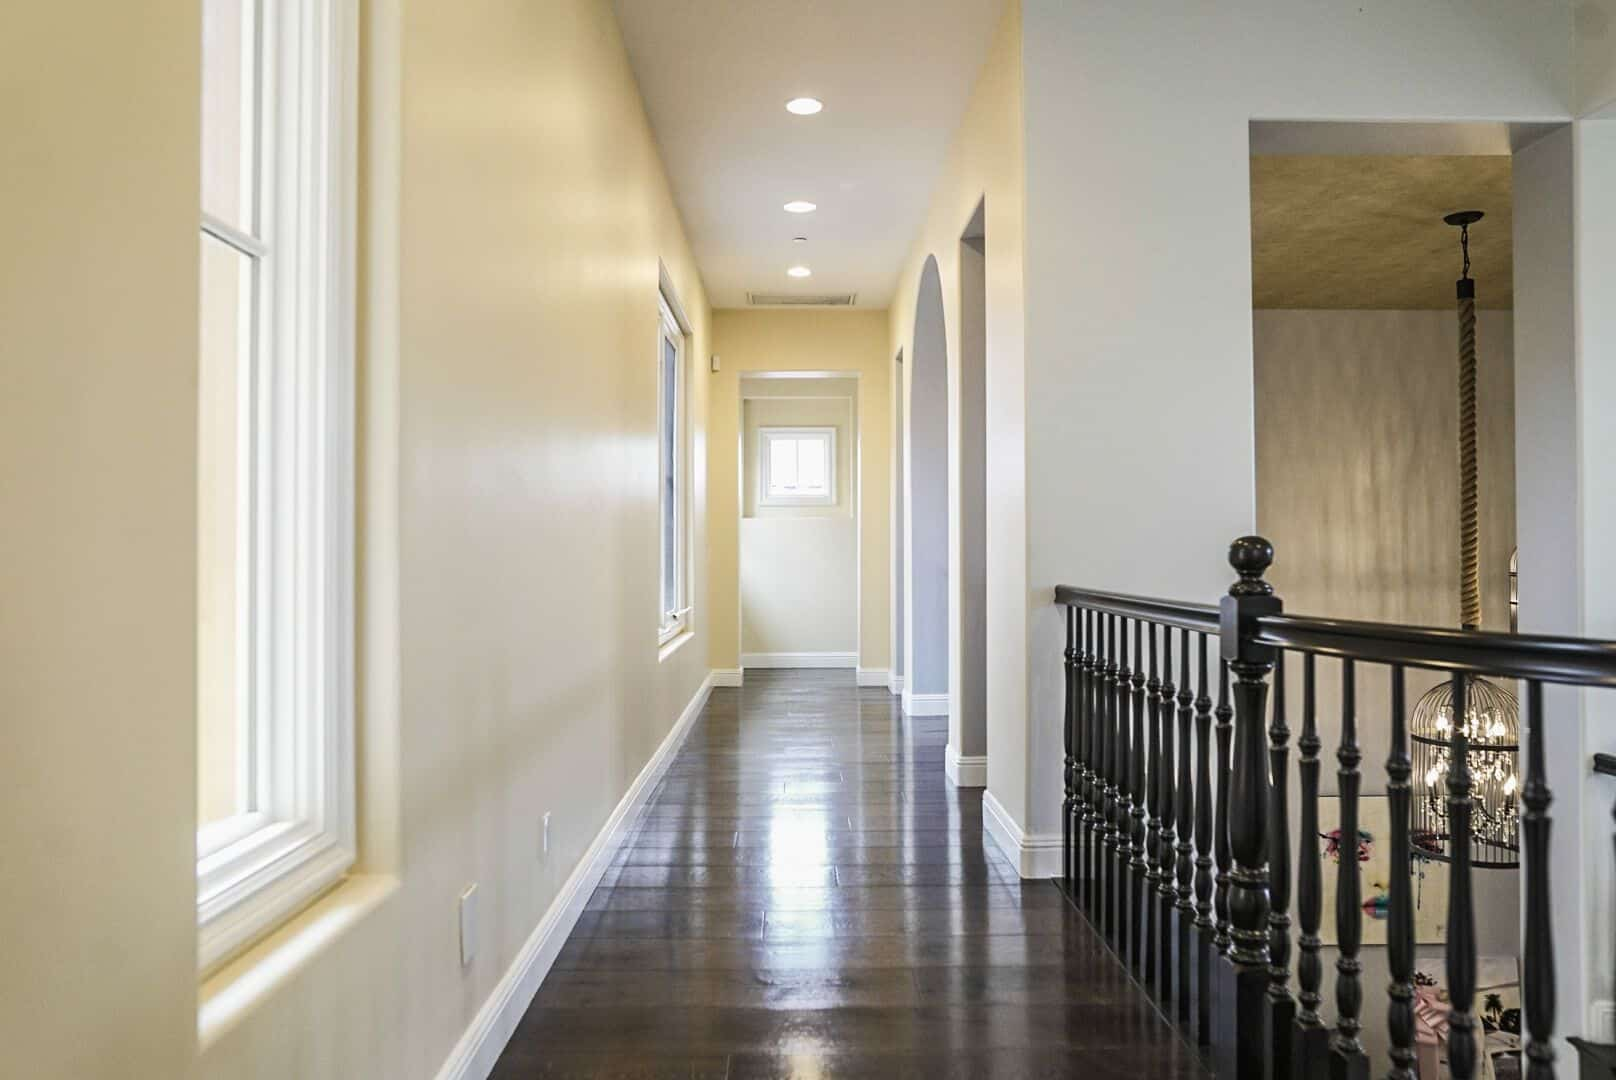 Another look at a hallway in the second floor, featuring beige walls and hardwood floors. Images courtesy of Toptenrealestatedeals.com.